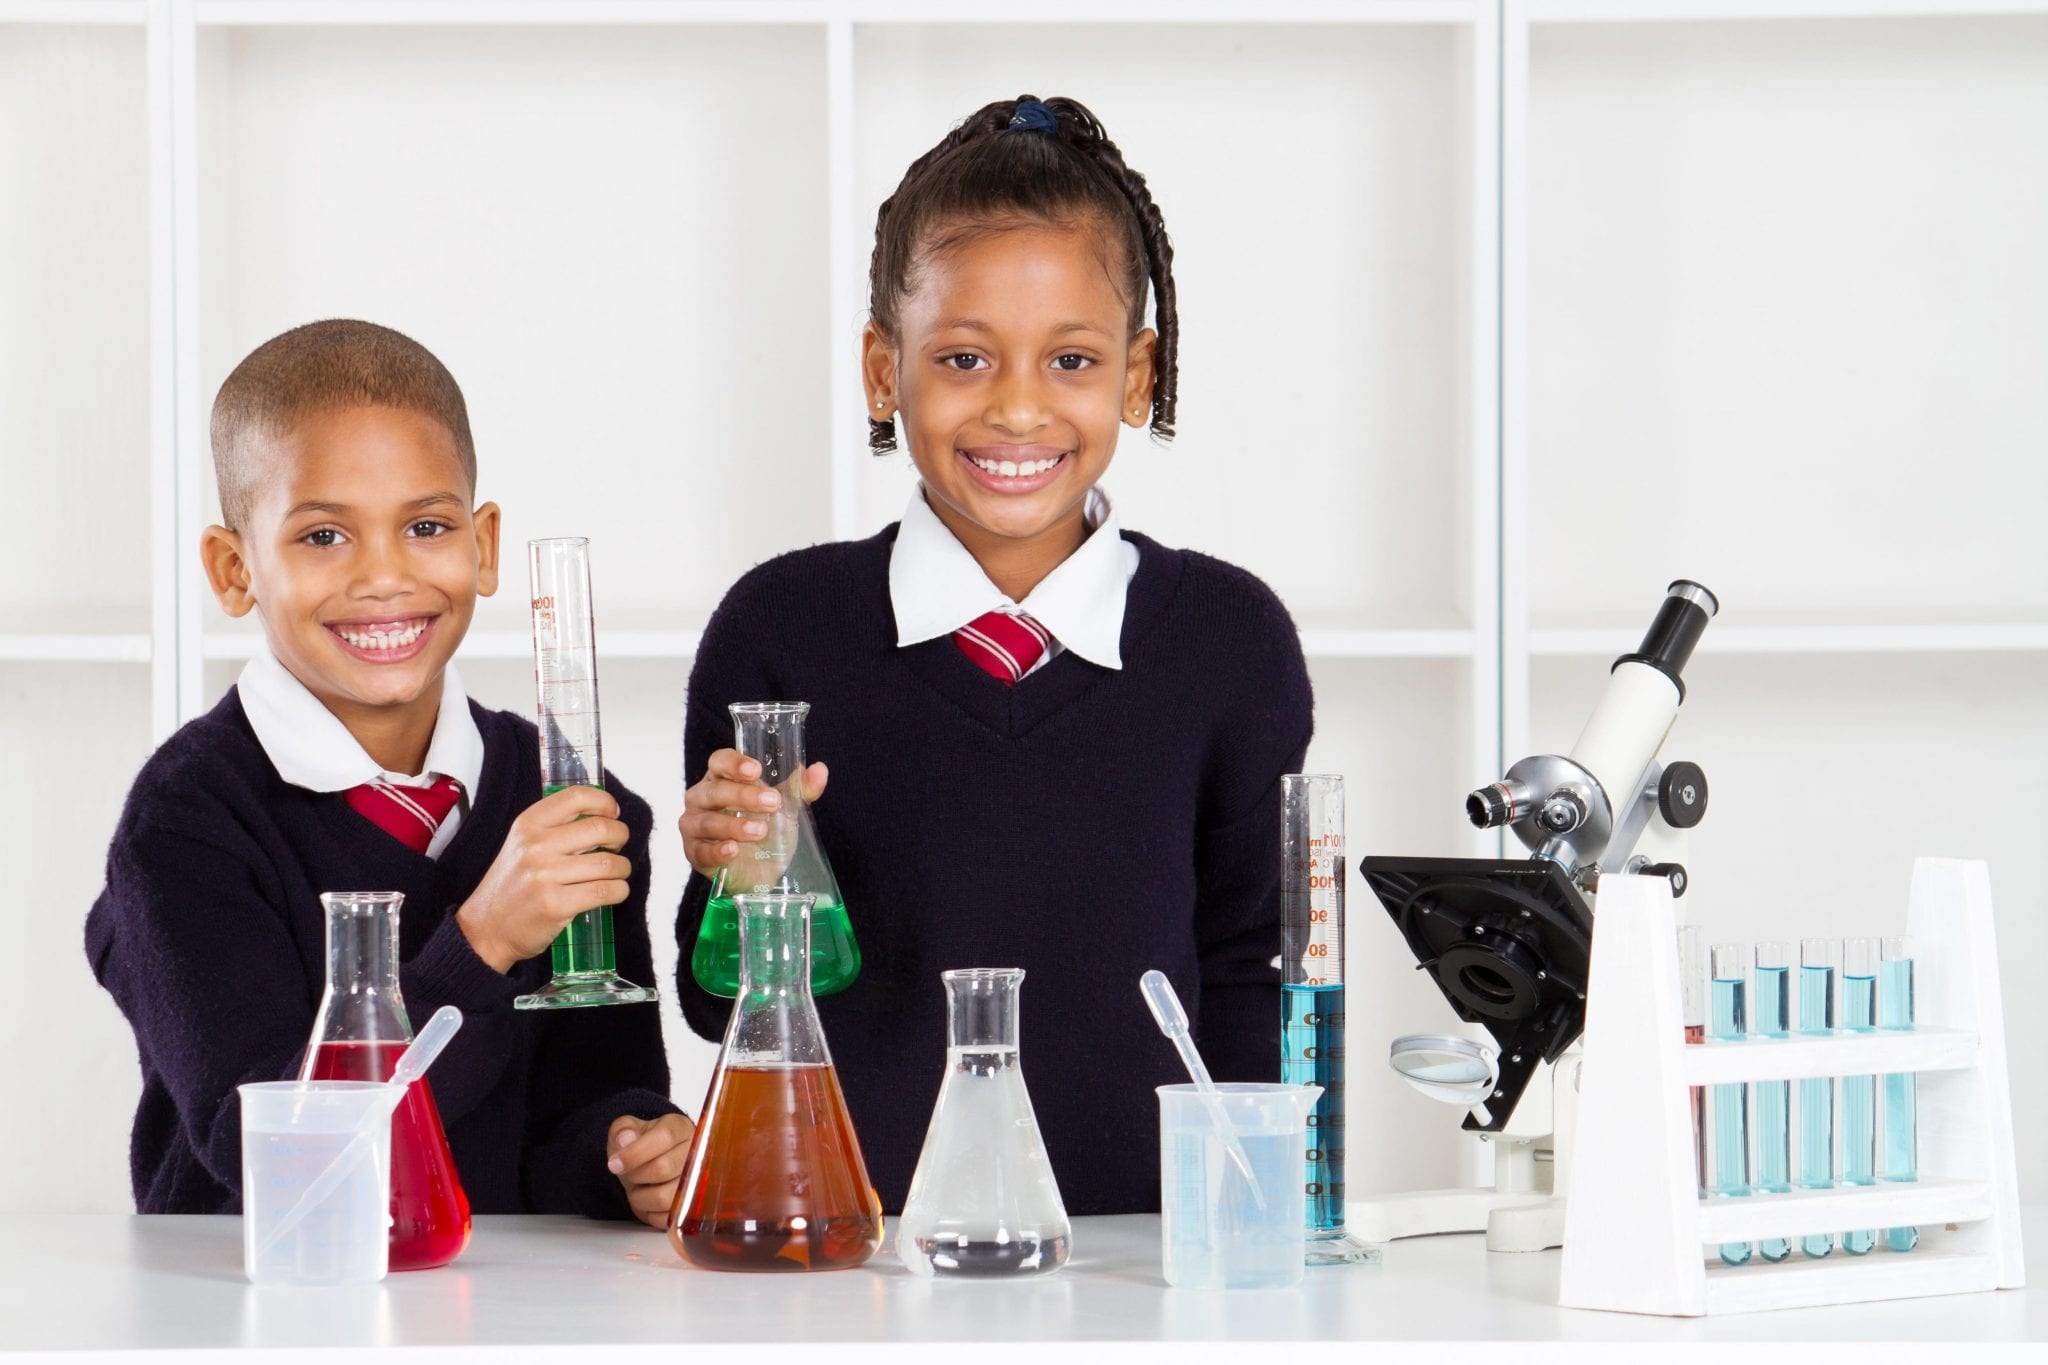 Understanding The Basics Of STEM Education - Understanding the Basics of STEM Education